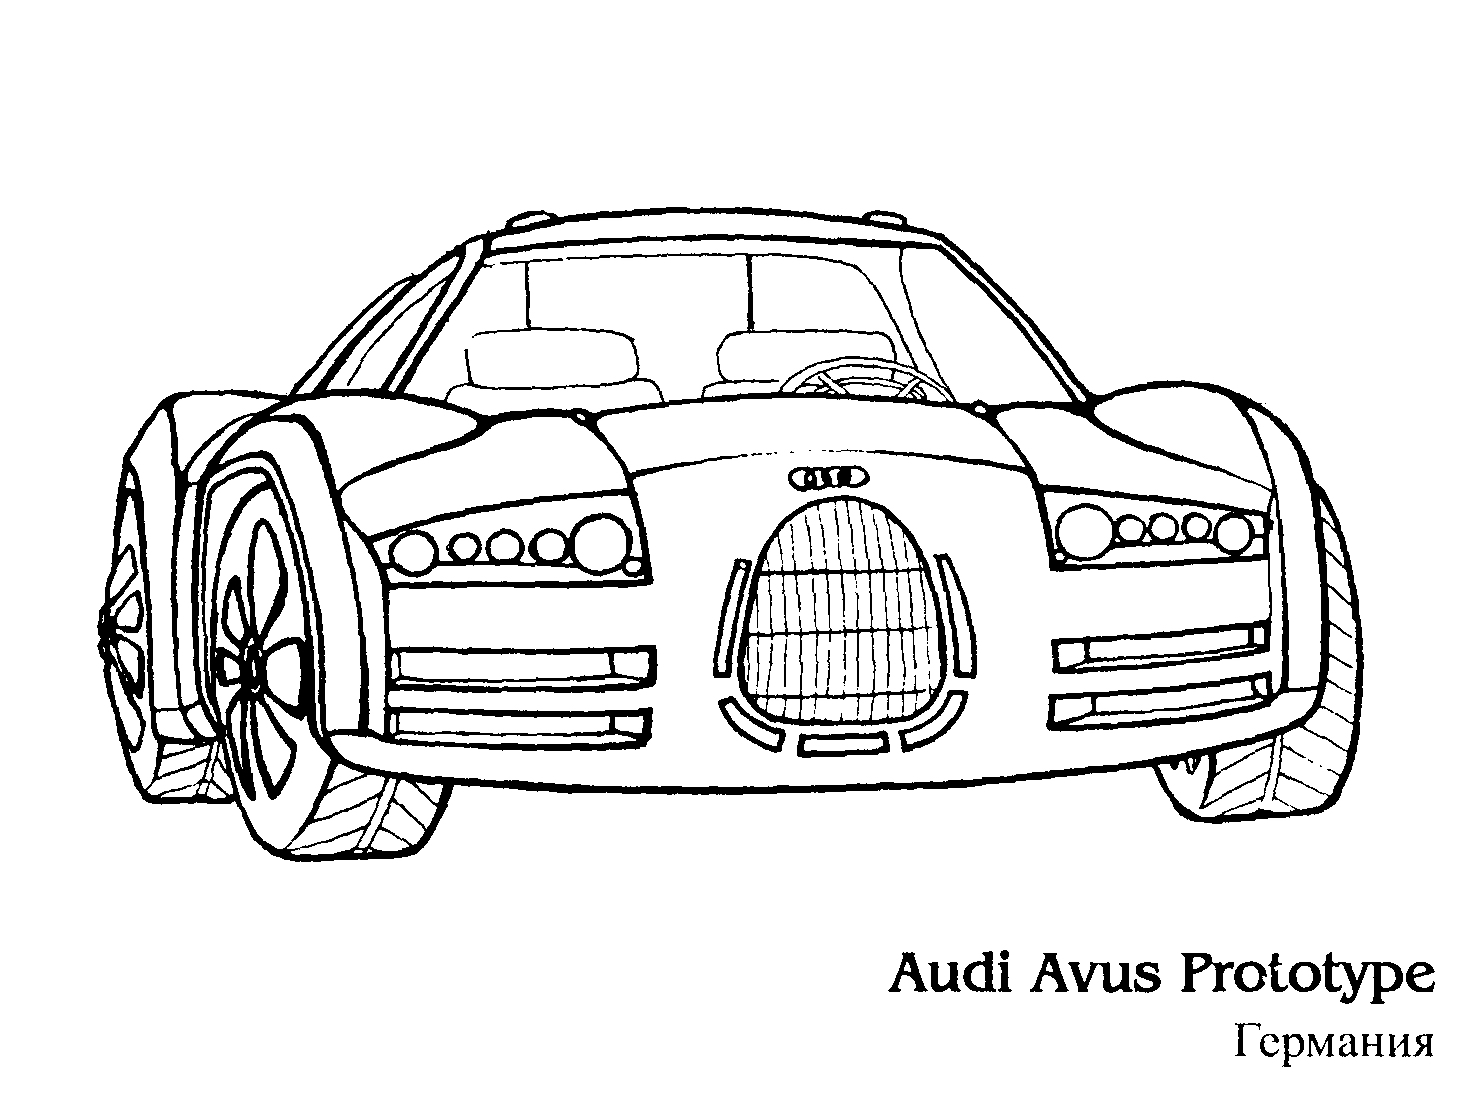 How To Draw A 1968 Mustang likewise Bmw r 1200 gs adventure together with Volkswagen Golf Gti also Aston martin vantage gt3 together with Cool Car Coloring Pages. on aston martin v12